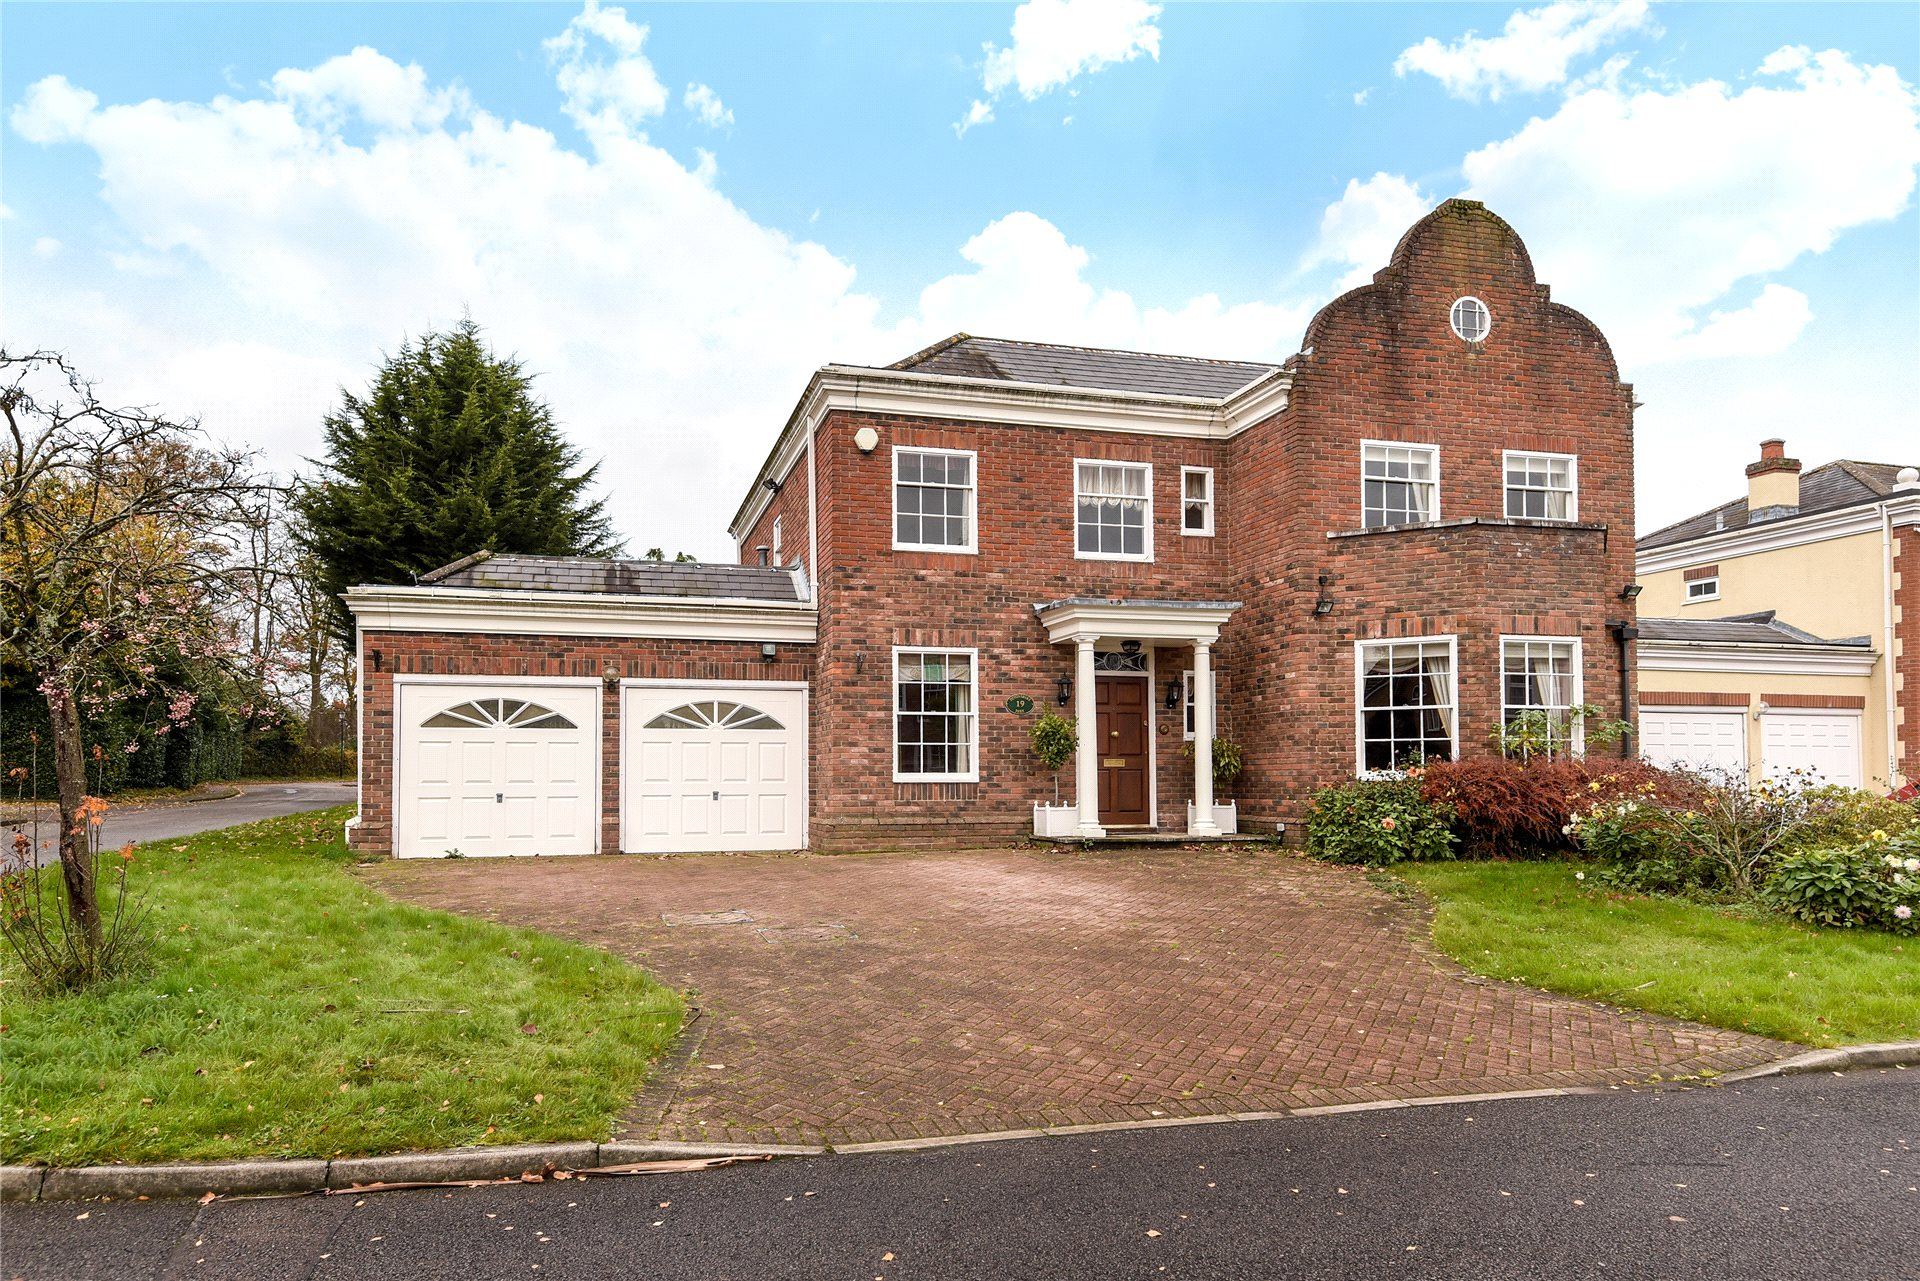 5 Bedrooms Detached House for sale in Devonshire Park, Reading, Berkshire, RG2